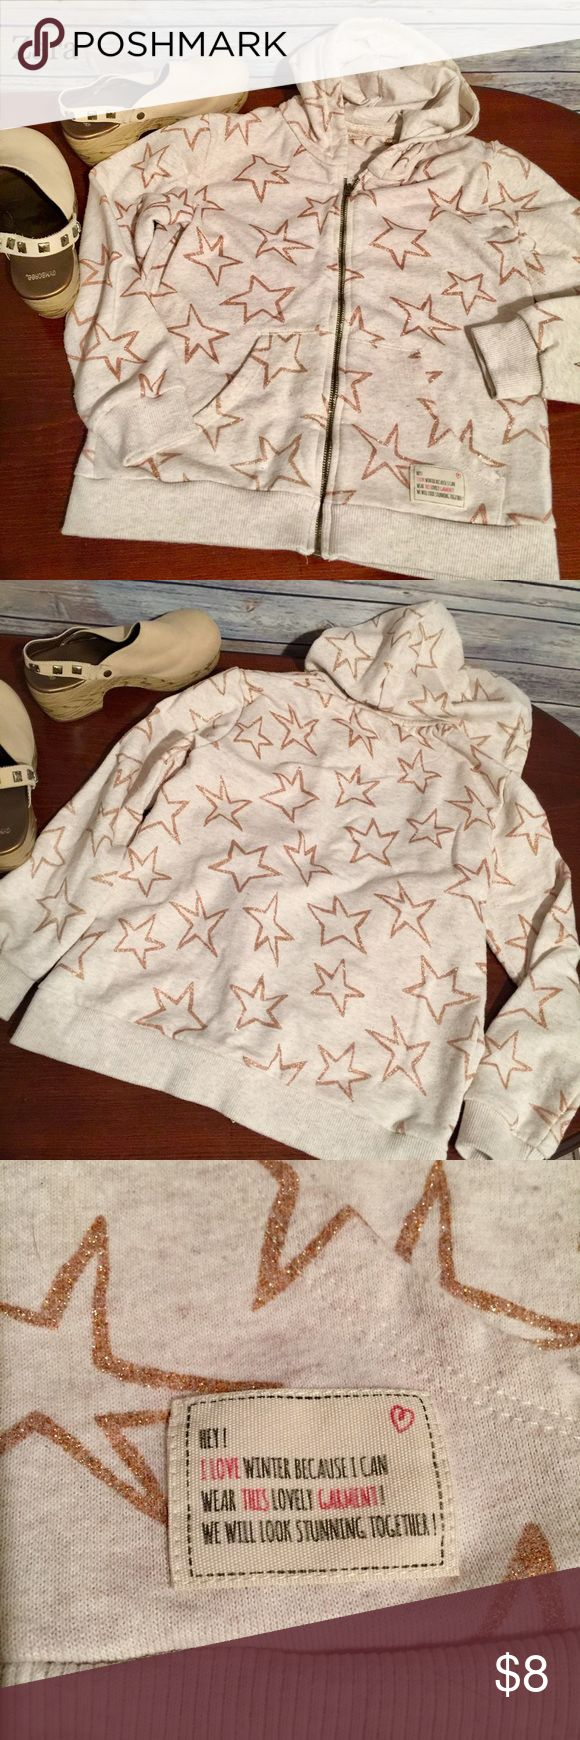 Zara Girl's Hoodie, Size 11/12 Super adorable zip hoodie from Zara Girls. Preloved condition with general wash wear. Cream color with gold sparkle stars that really add pop! 🌟Ready to make another little lady feel like a star! Please feel free to ask questions or bundle for the best savings. No trades. Immediate shipping. Thank you! ☺️ Zara Shirts & Tops Sweatshirts & Hoodies